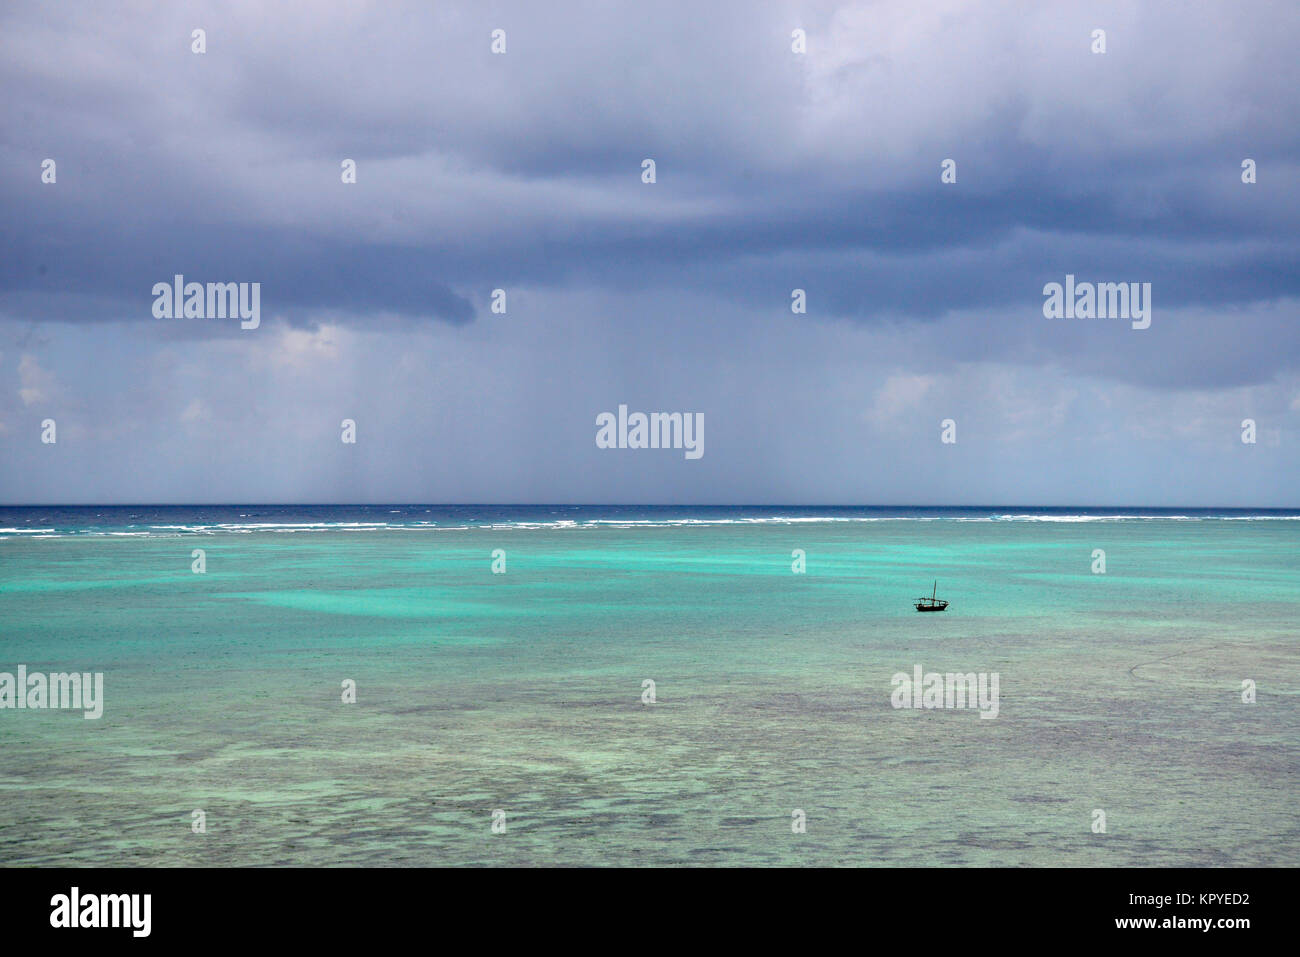 Zanzibar is an Indian Ocean paradise that most people can afford to visit for lazy holidays on warm beaches. - Stock Image